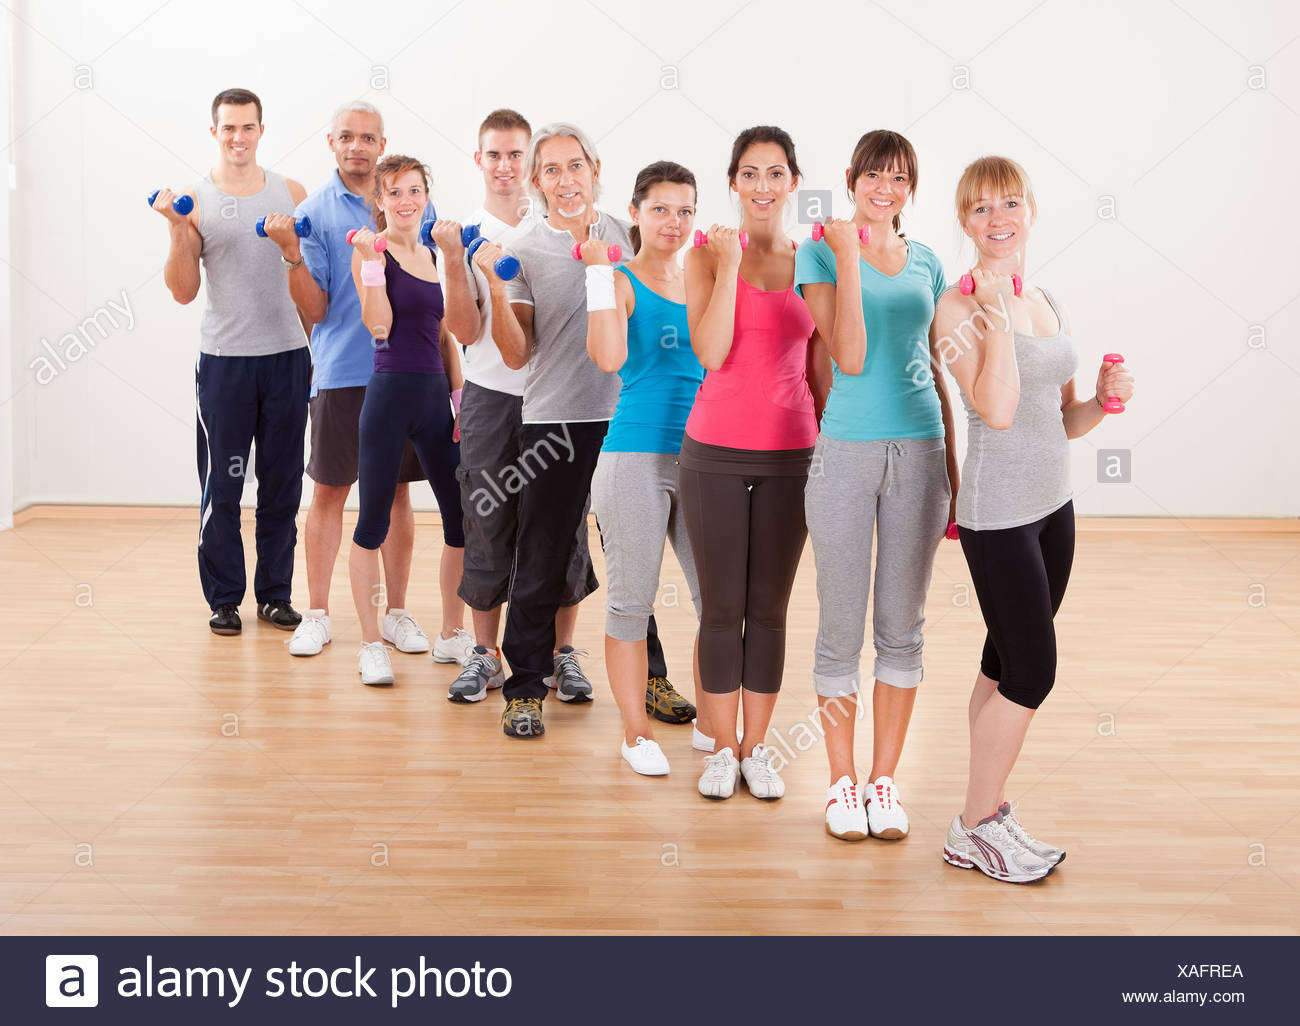 aerobics class of diverse men and women of different ages working